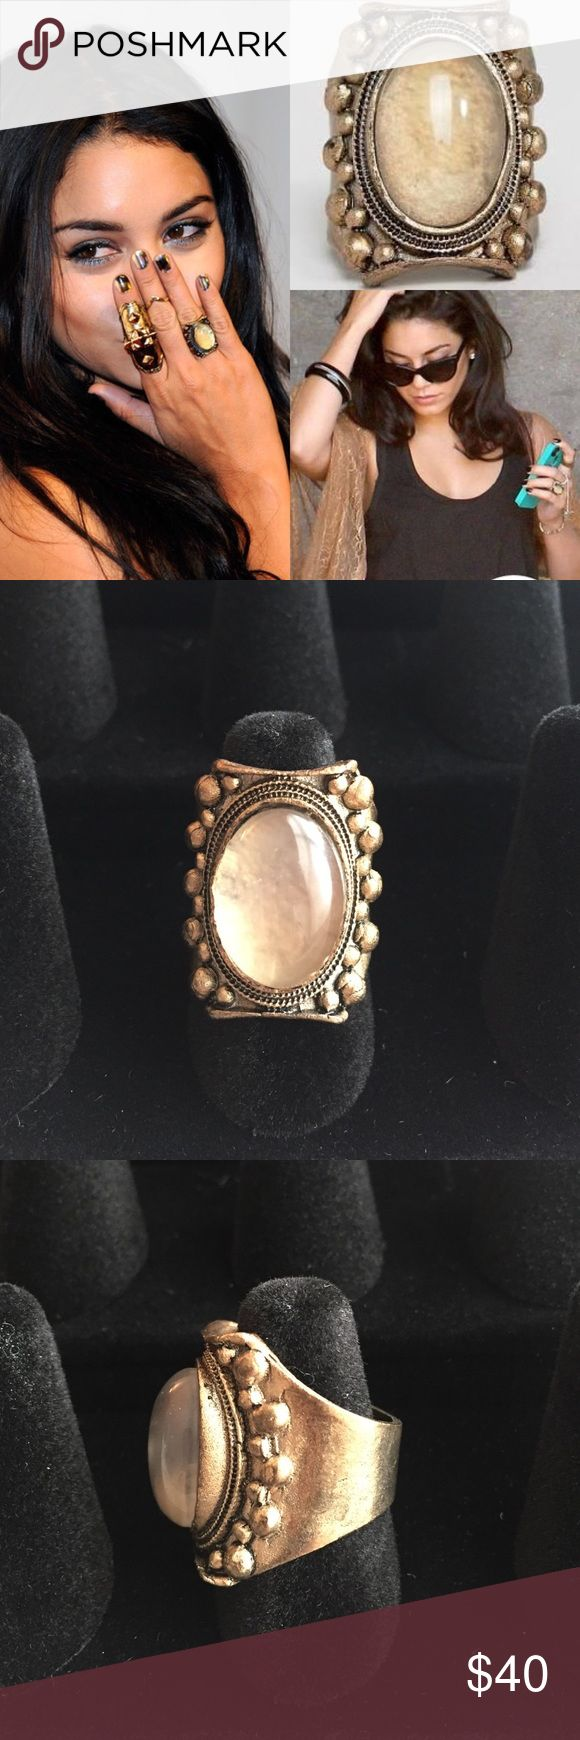 LOW LUV Gold Plated Moonstone Ring LOW LUV by famous jewelry designer Erin Watson. Gold plated moonstone ring with vintage antique feel. Circle designs around center moonstone. Size 7. Worn a handful of times. Great condition. As seen on celebrities such as Vanessa Hudgens and Ashley Tisdale. Smoke-free home. This size no longer available thru retail. Low Luv x Erin Wasson Jewelry Rings